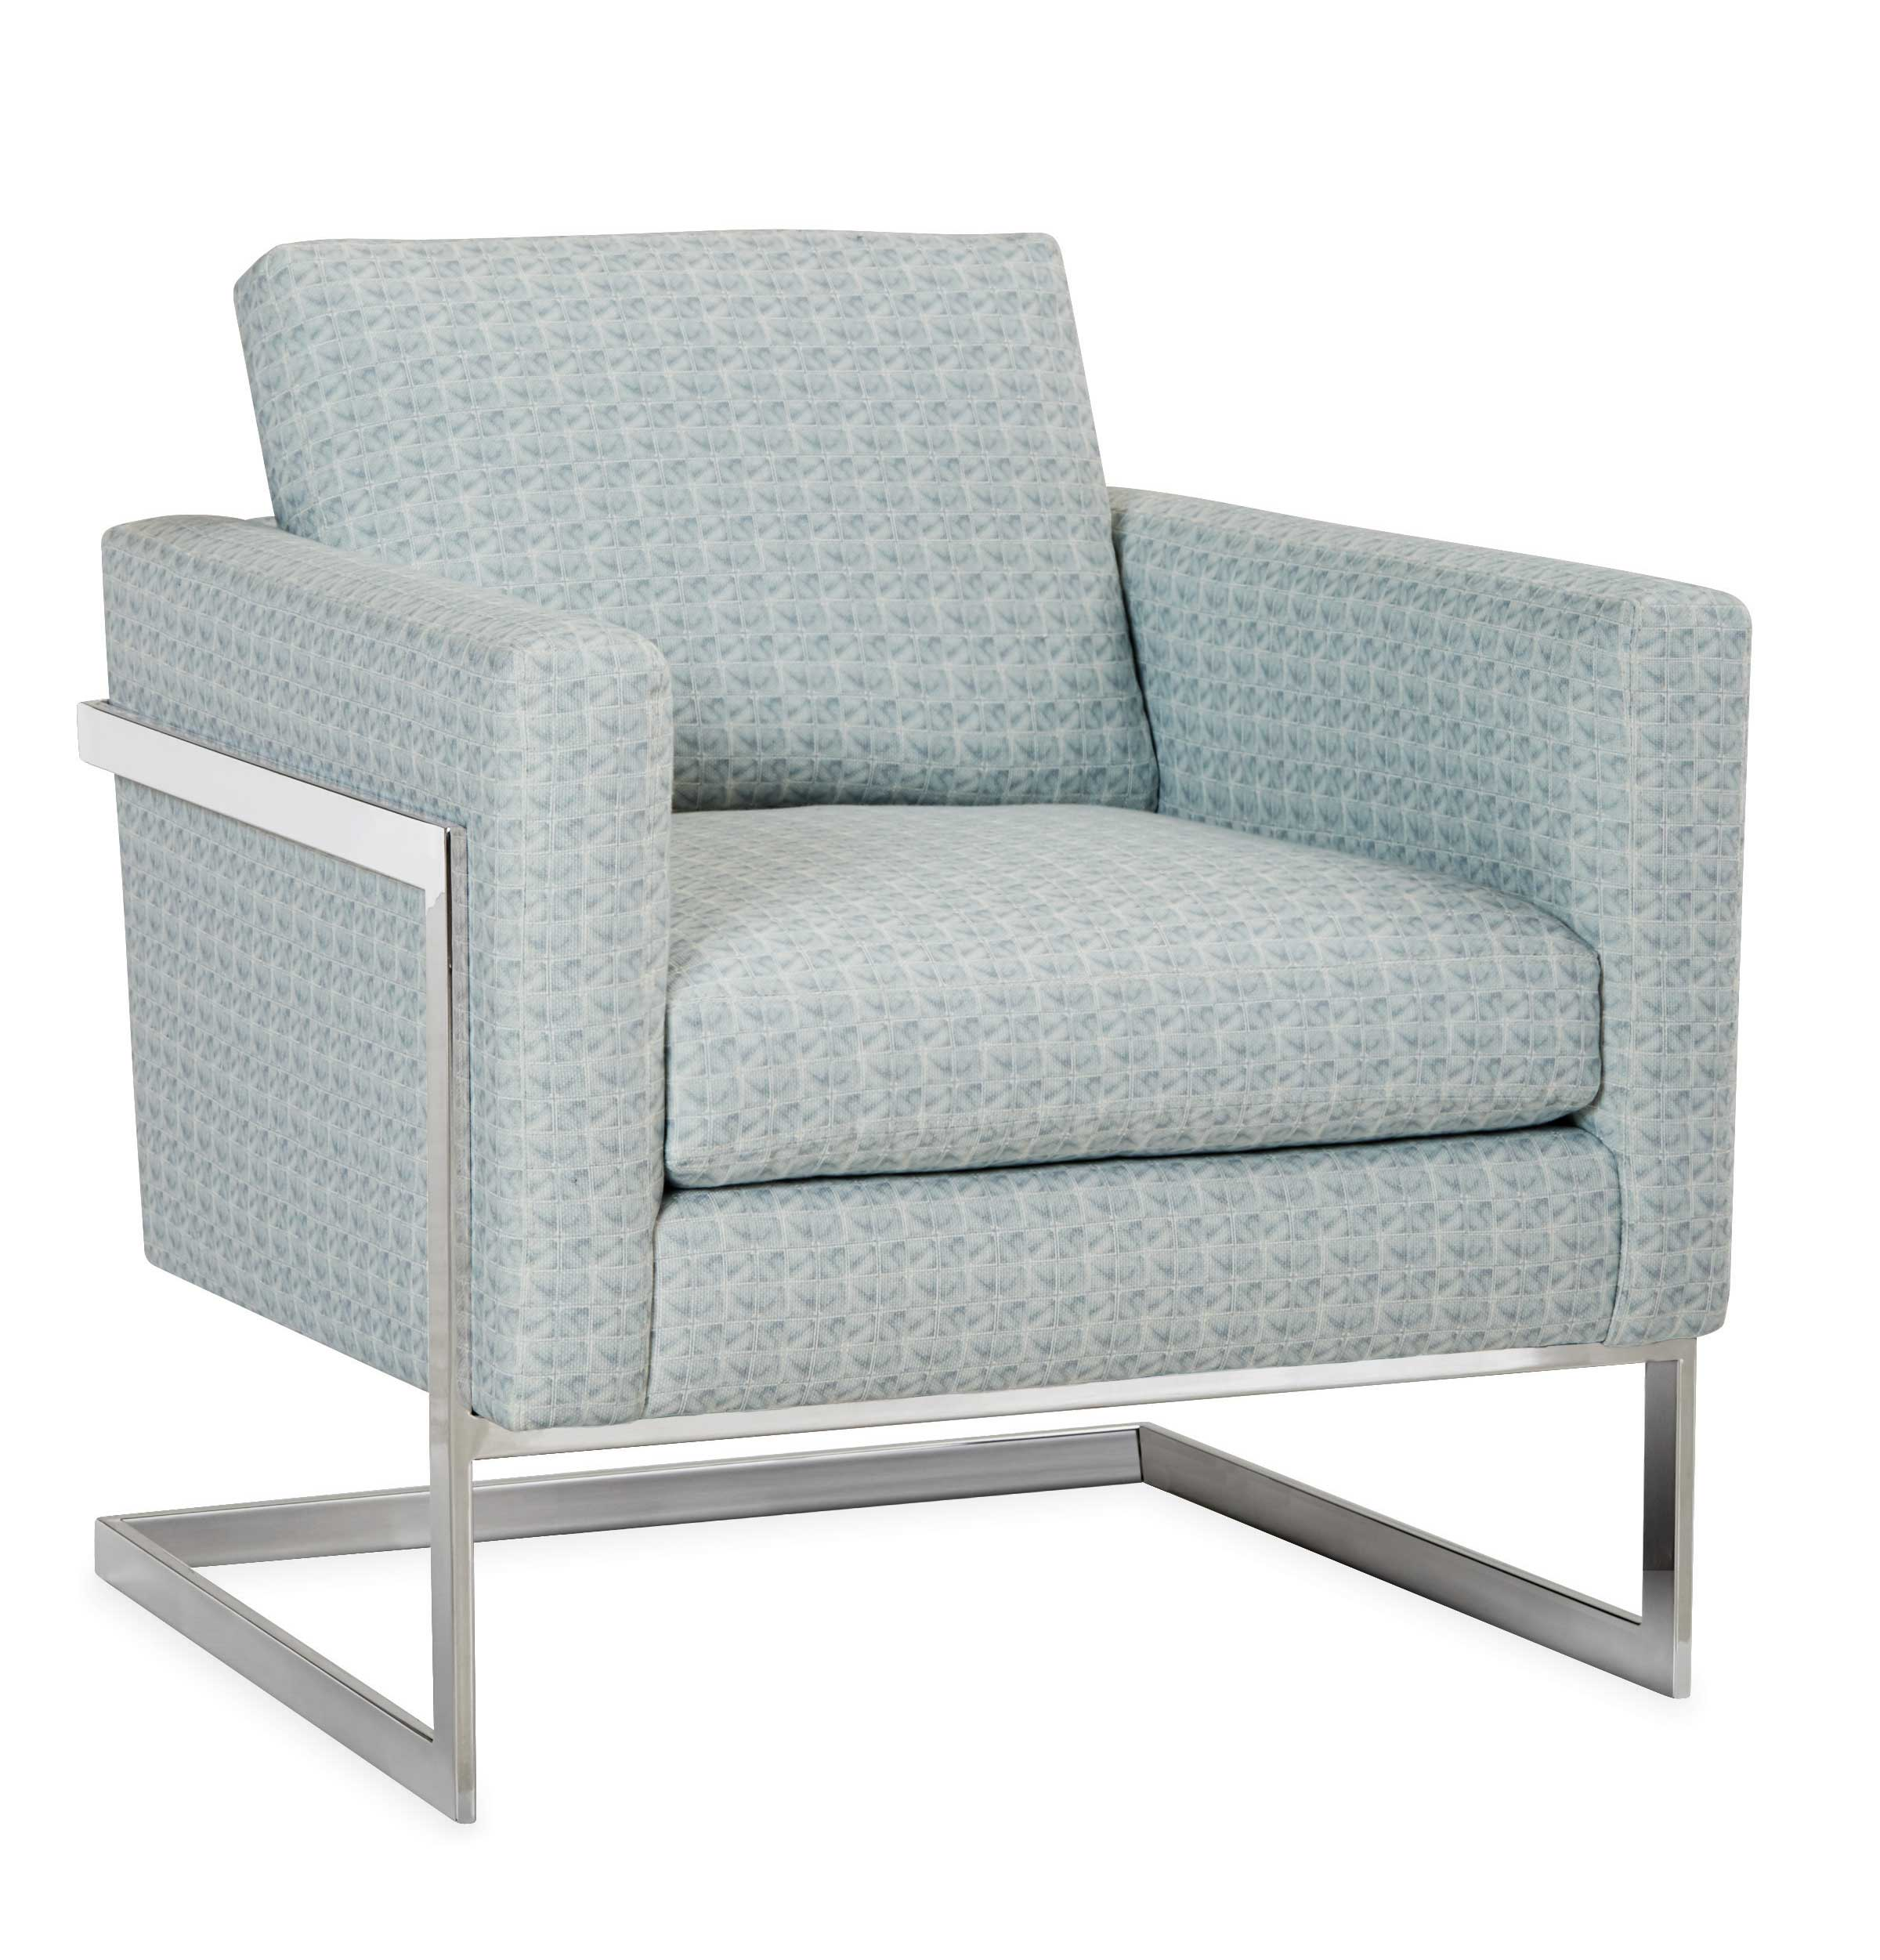 Lee Chair 269150